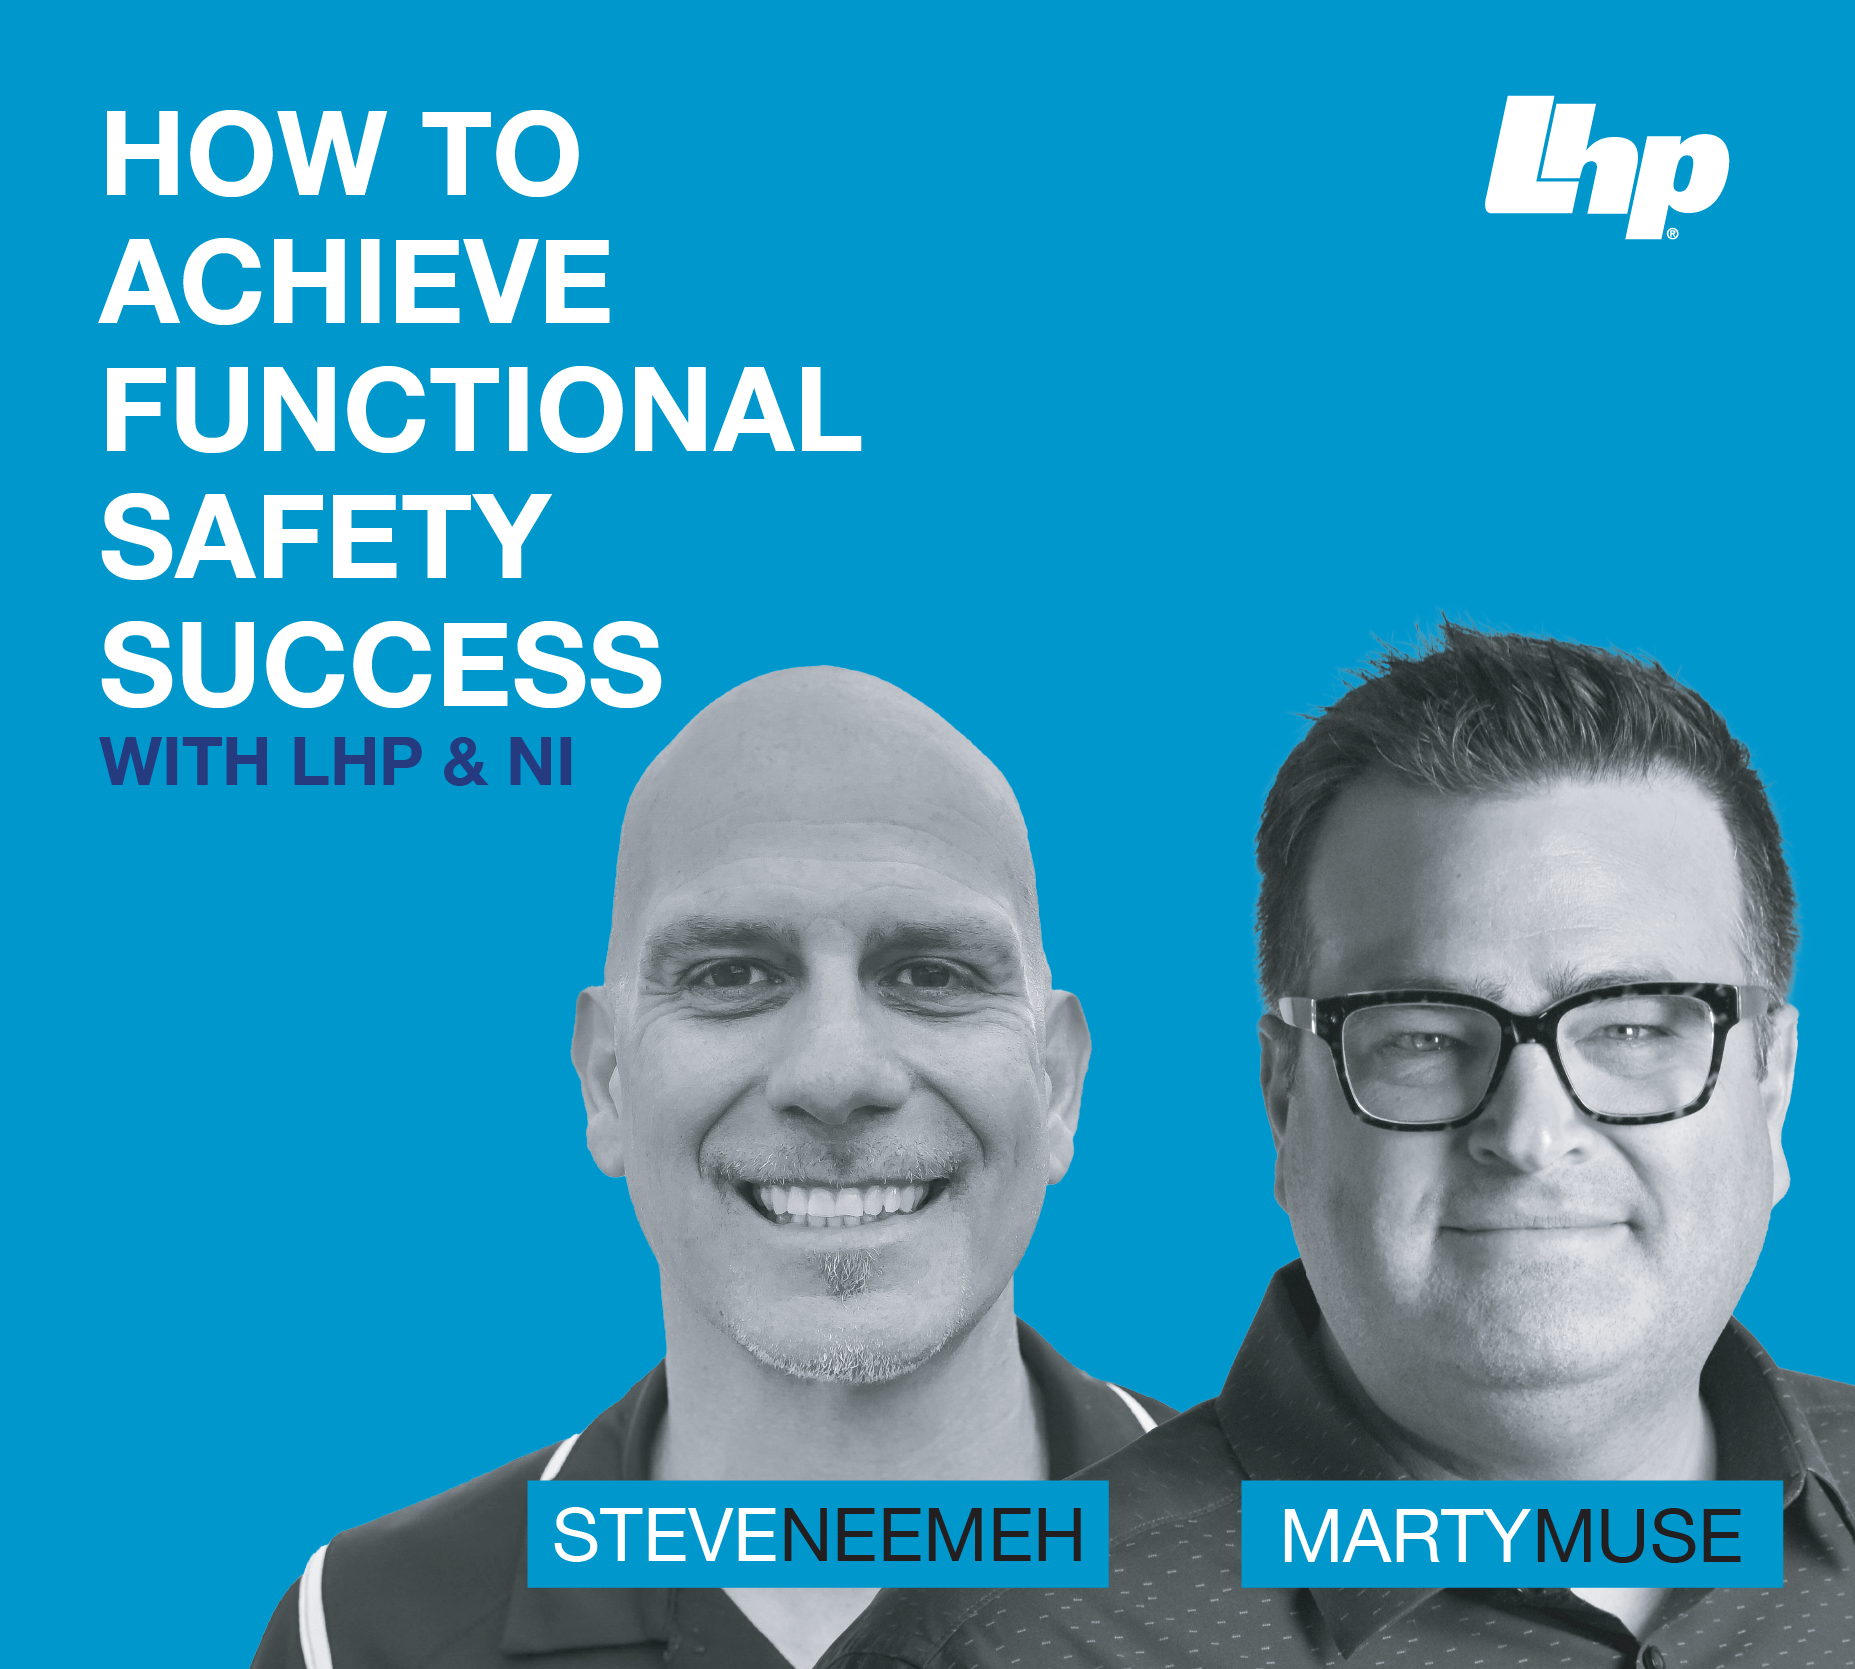 SME Interview: How to Achieve Functional Safety Success with LHP and NI